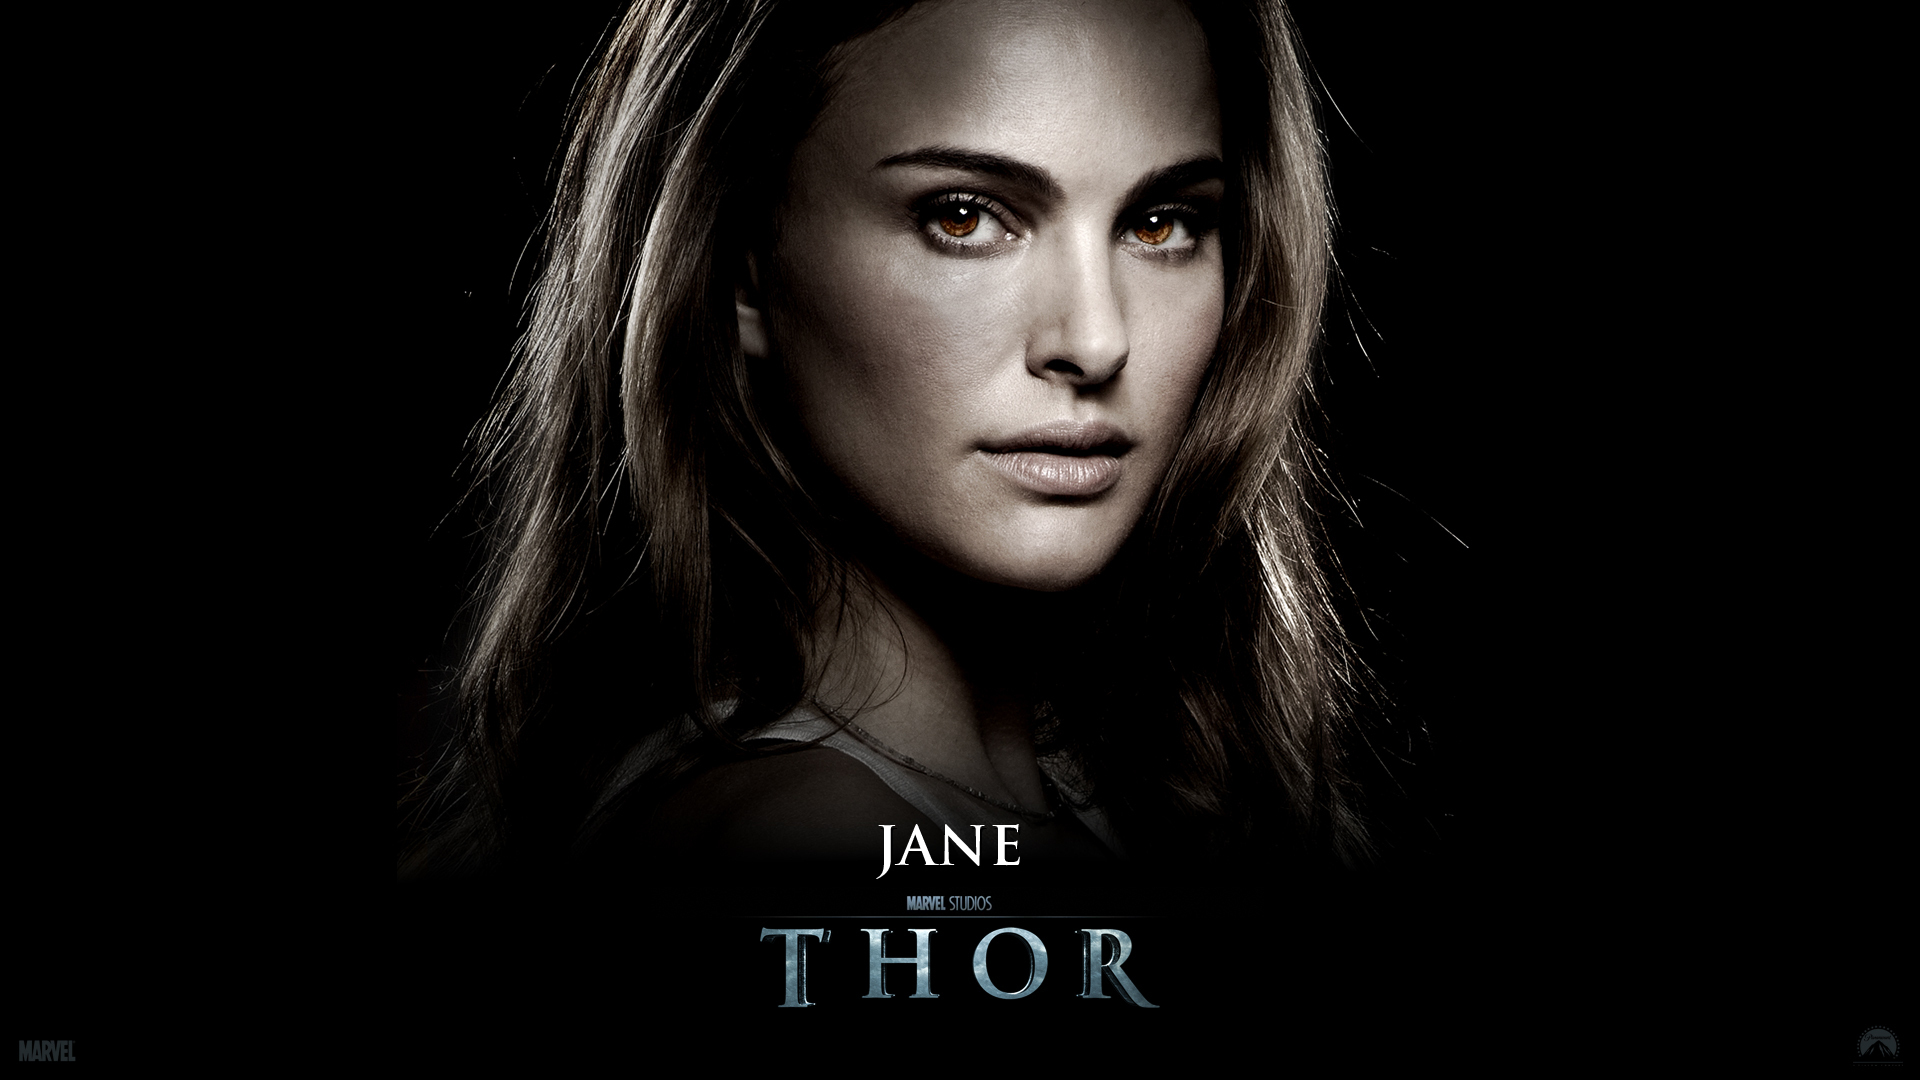 Natalie Portman Thor (movie) HD Wallpaper